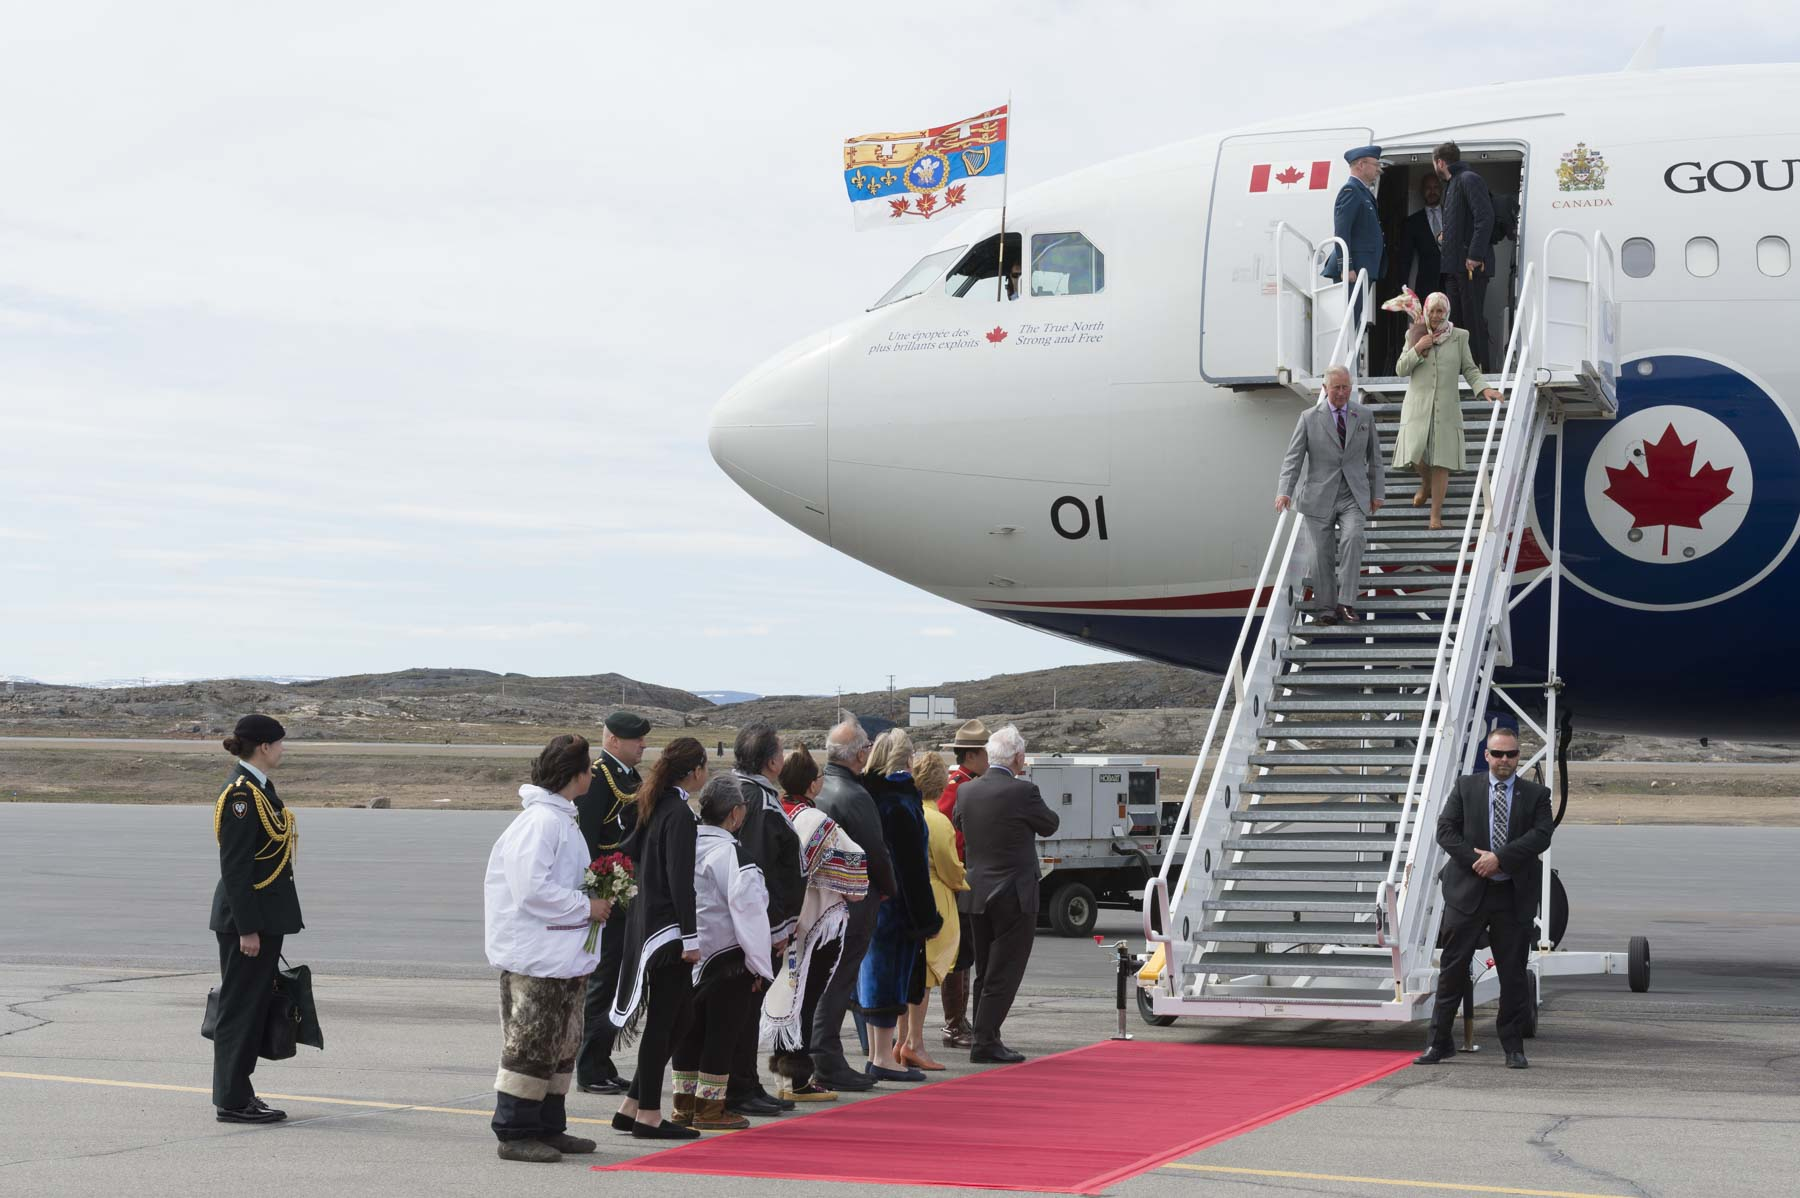 Their Excellencies the Right Honourable David Johnston, Governor General of Canada, and Mrs. Sharon Johnston welcomed to Canada Their Royal Highnesses The Prince of Wales and The Duchess of Cornwall at the airport in Iqaluit, Nunavut, on June 29, 2017.